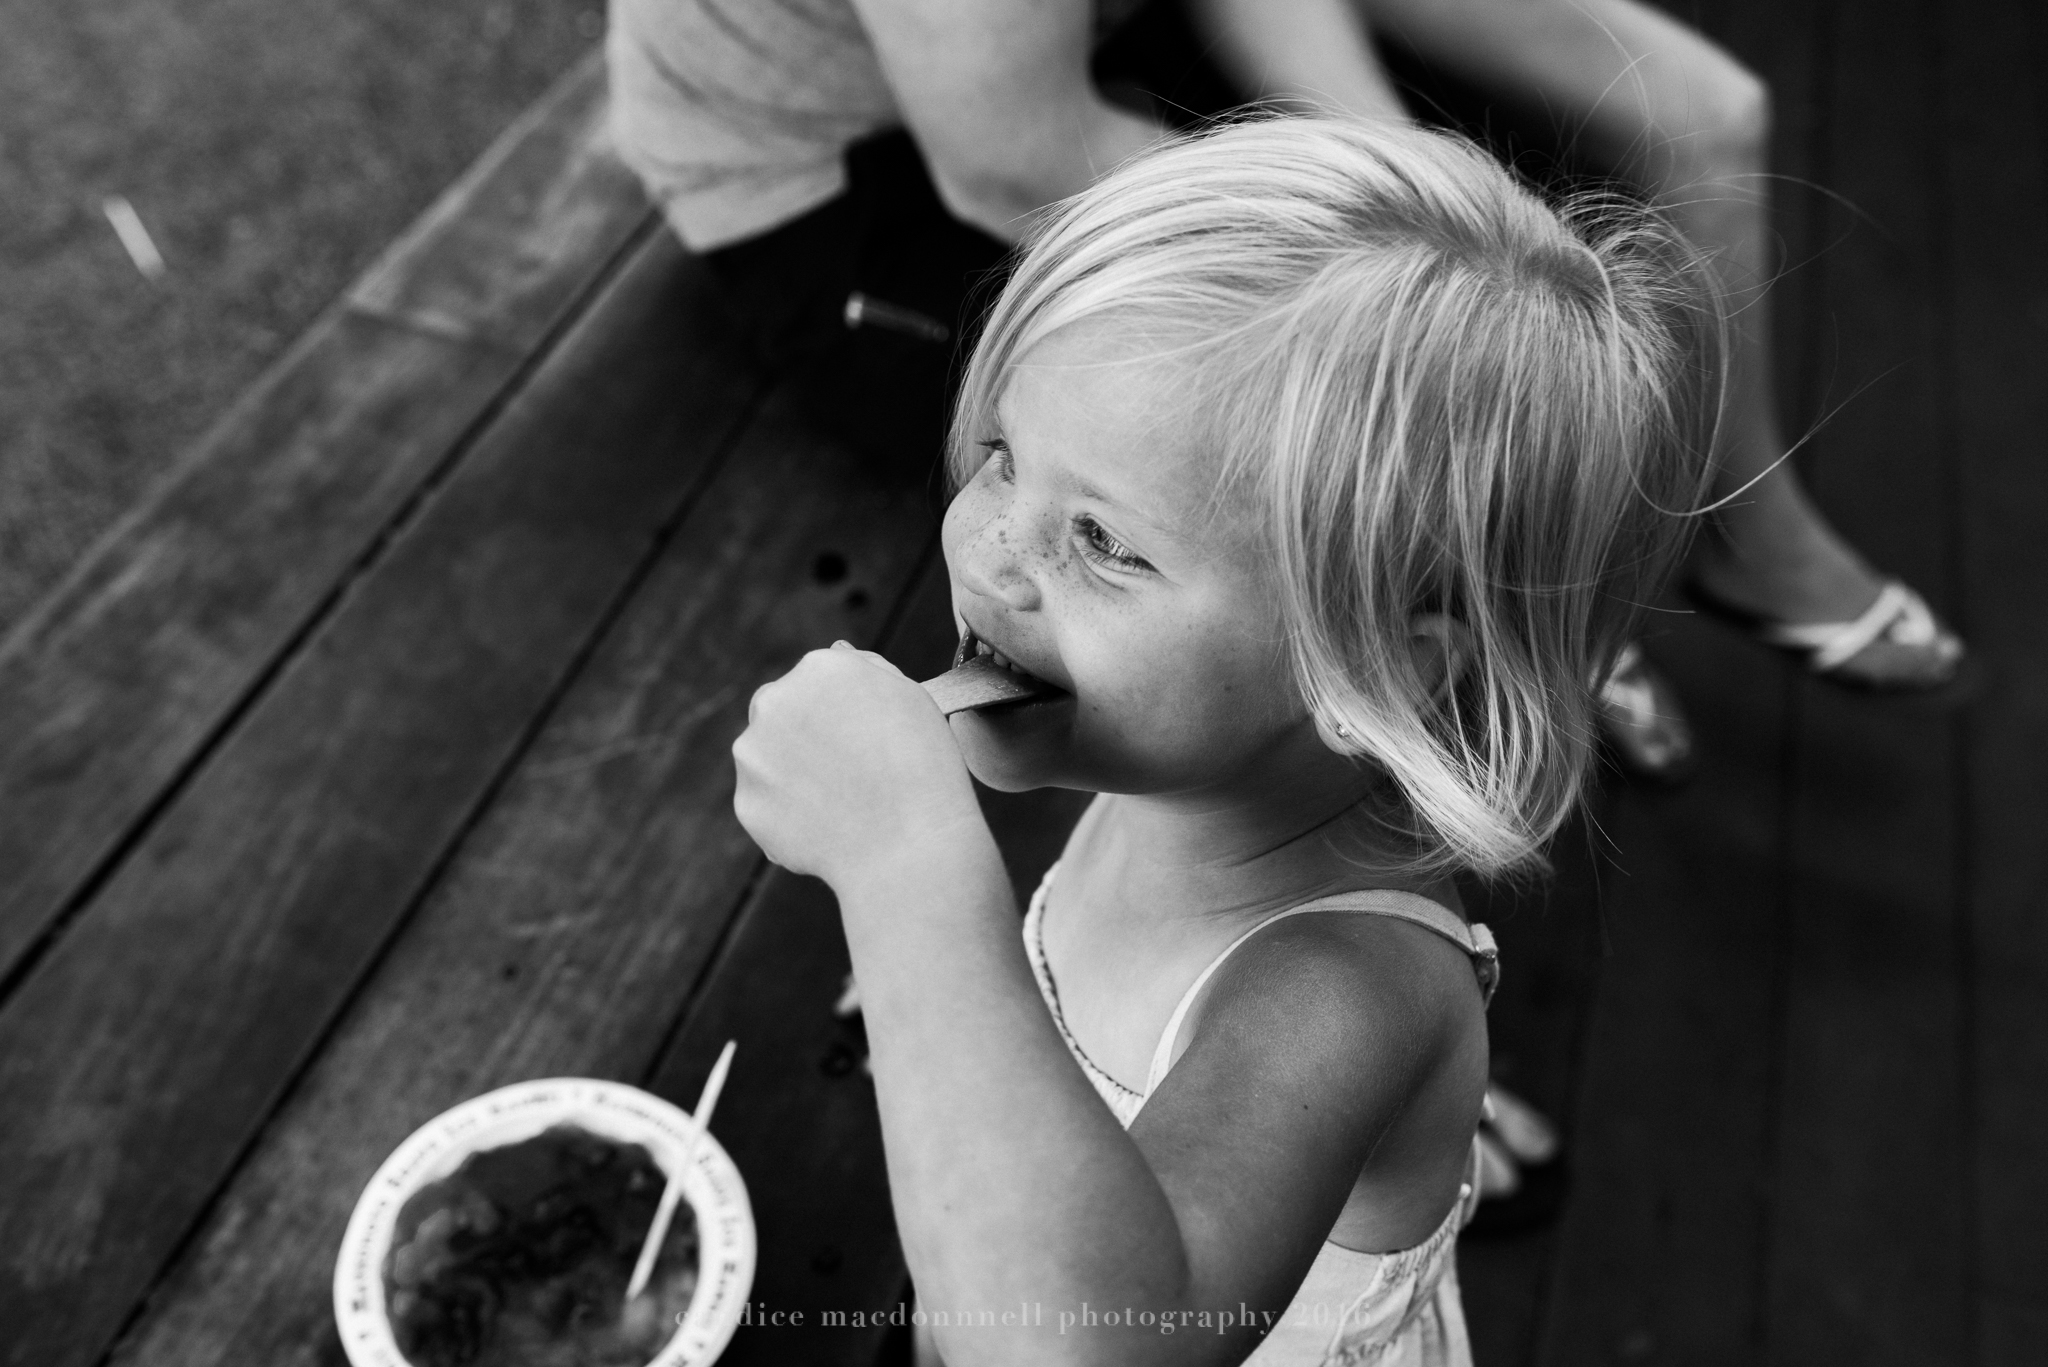 enjoying a snow cone at matsamotos lifestyle photography by candice macdonnell photography, oahu hawaii documentary photographer